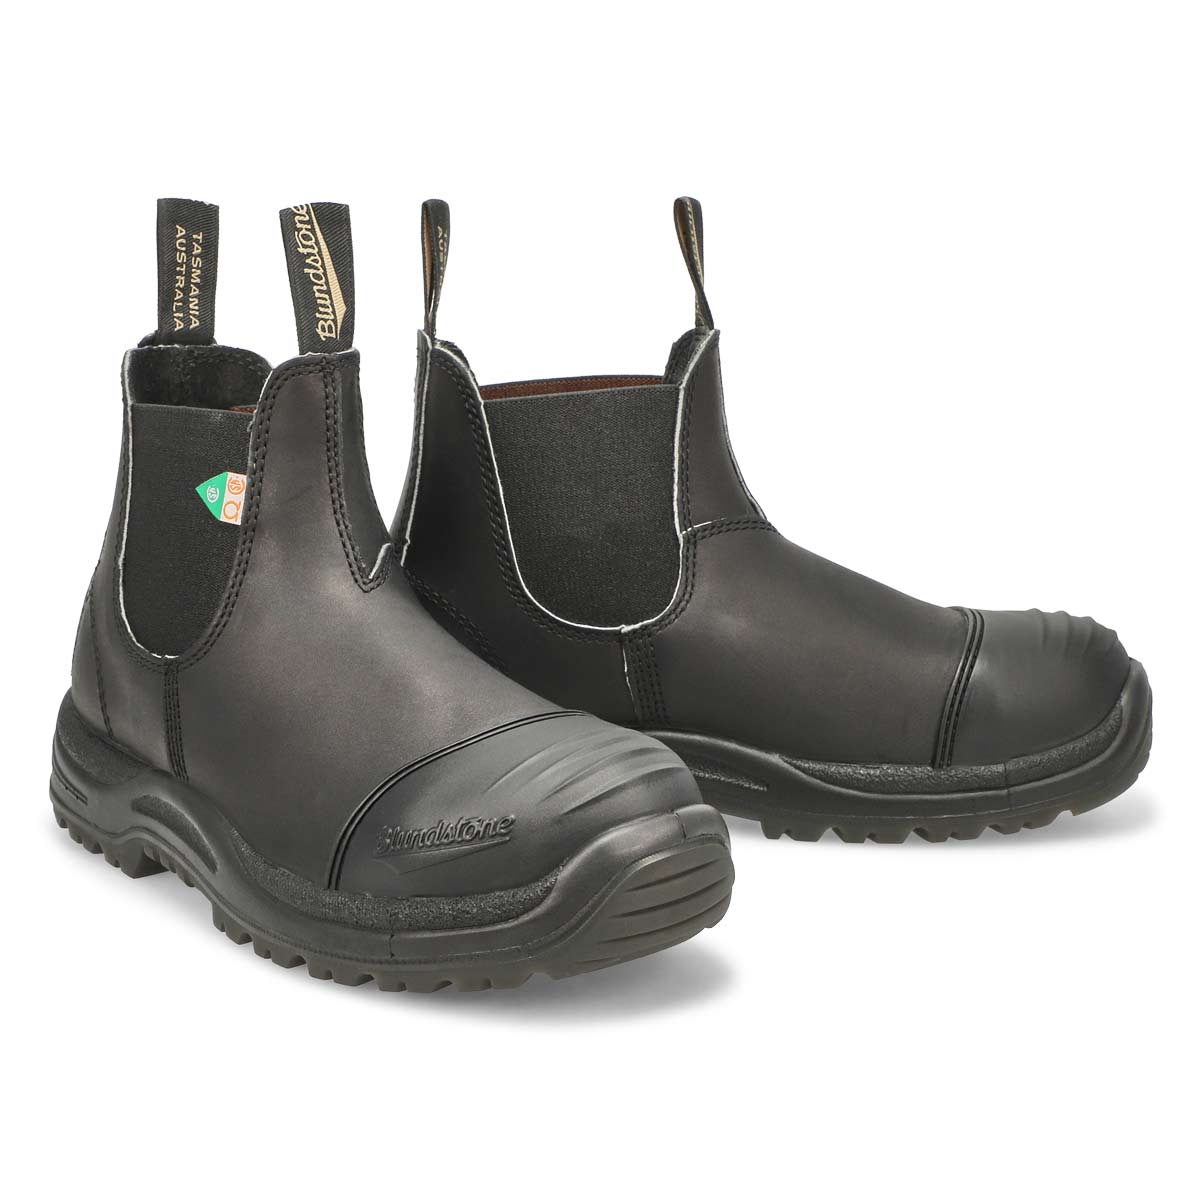 Unisex CSA black twin gore boot